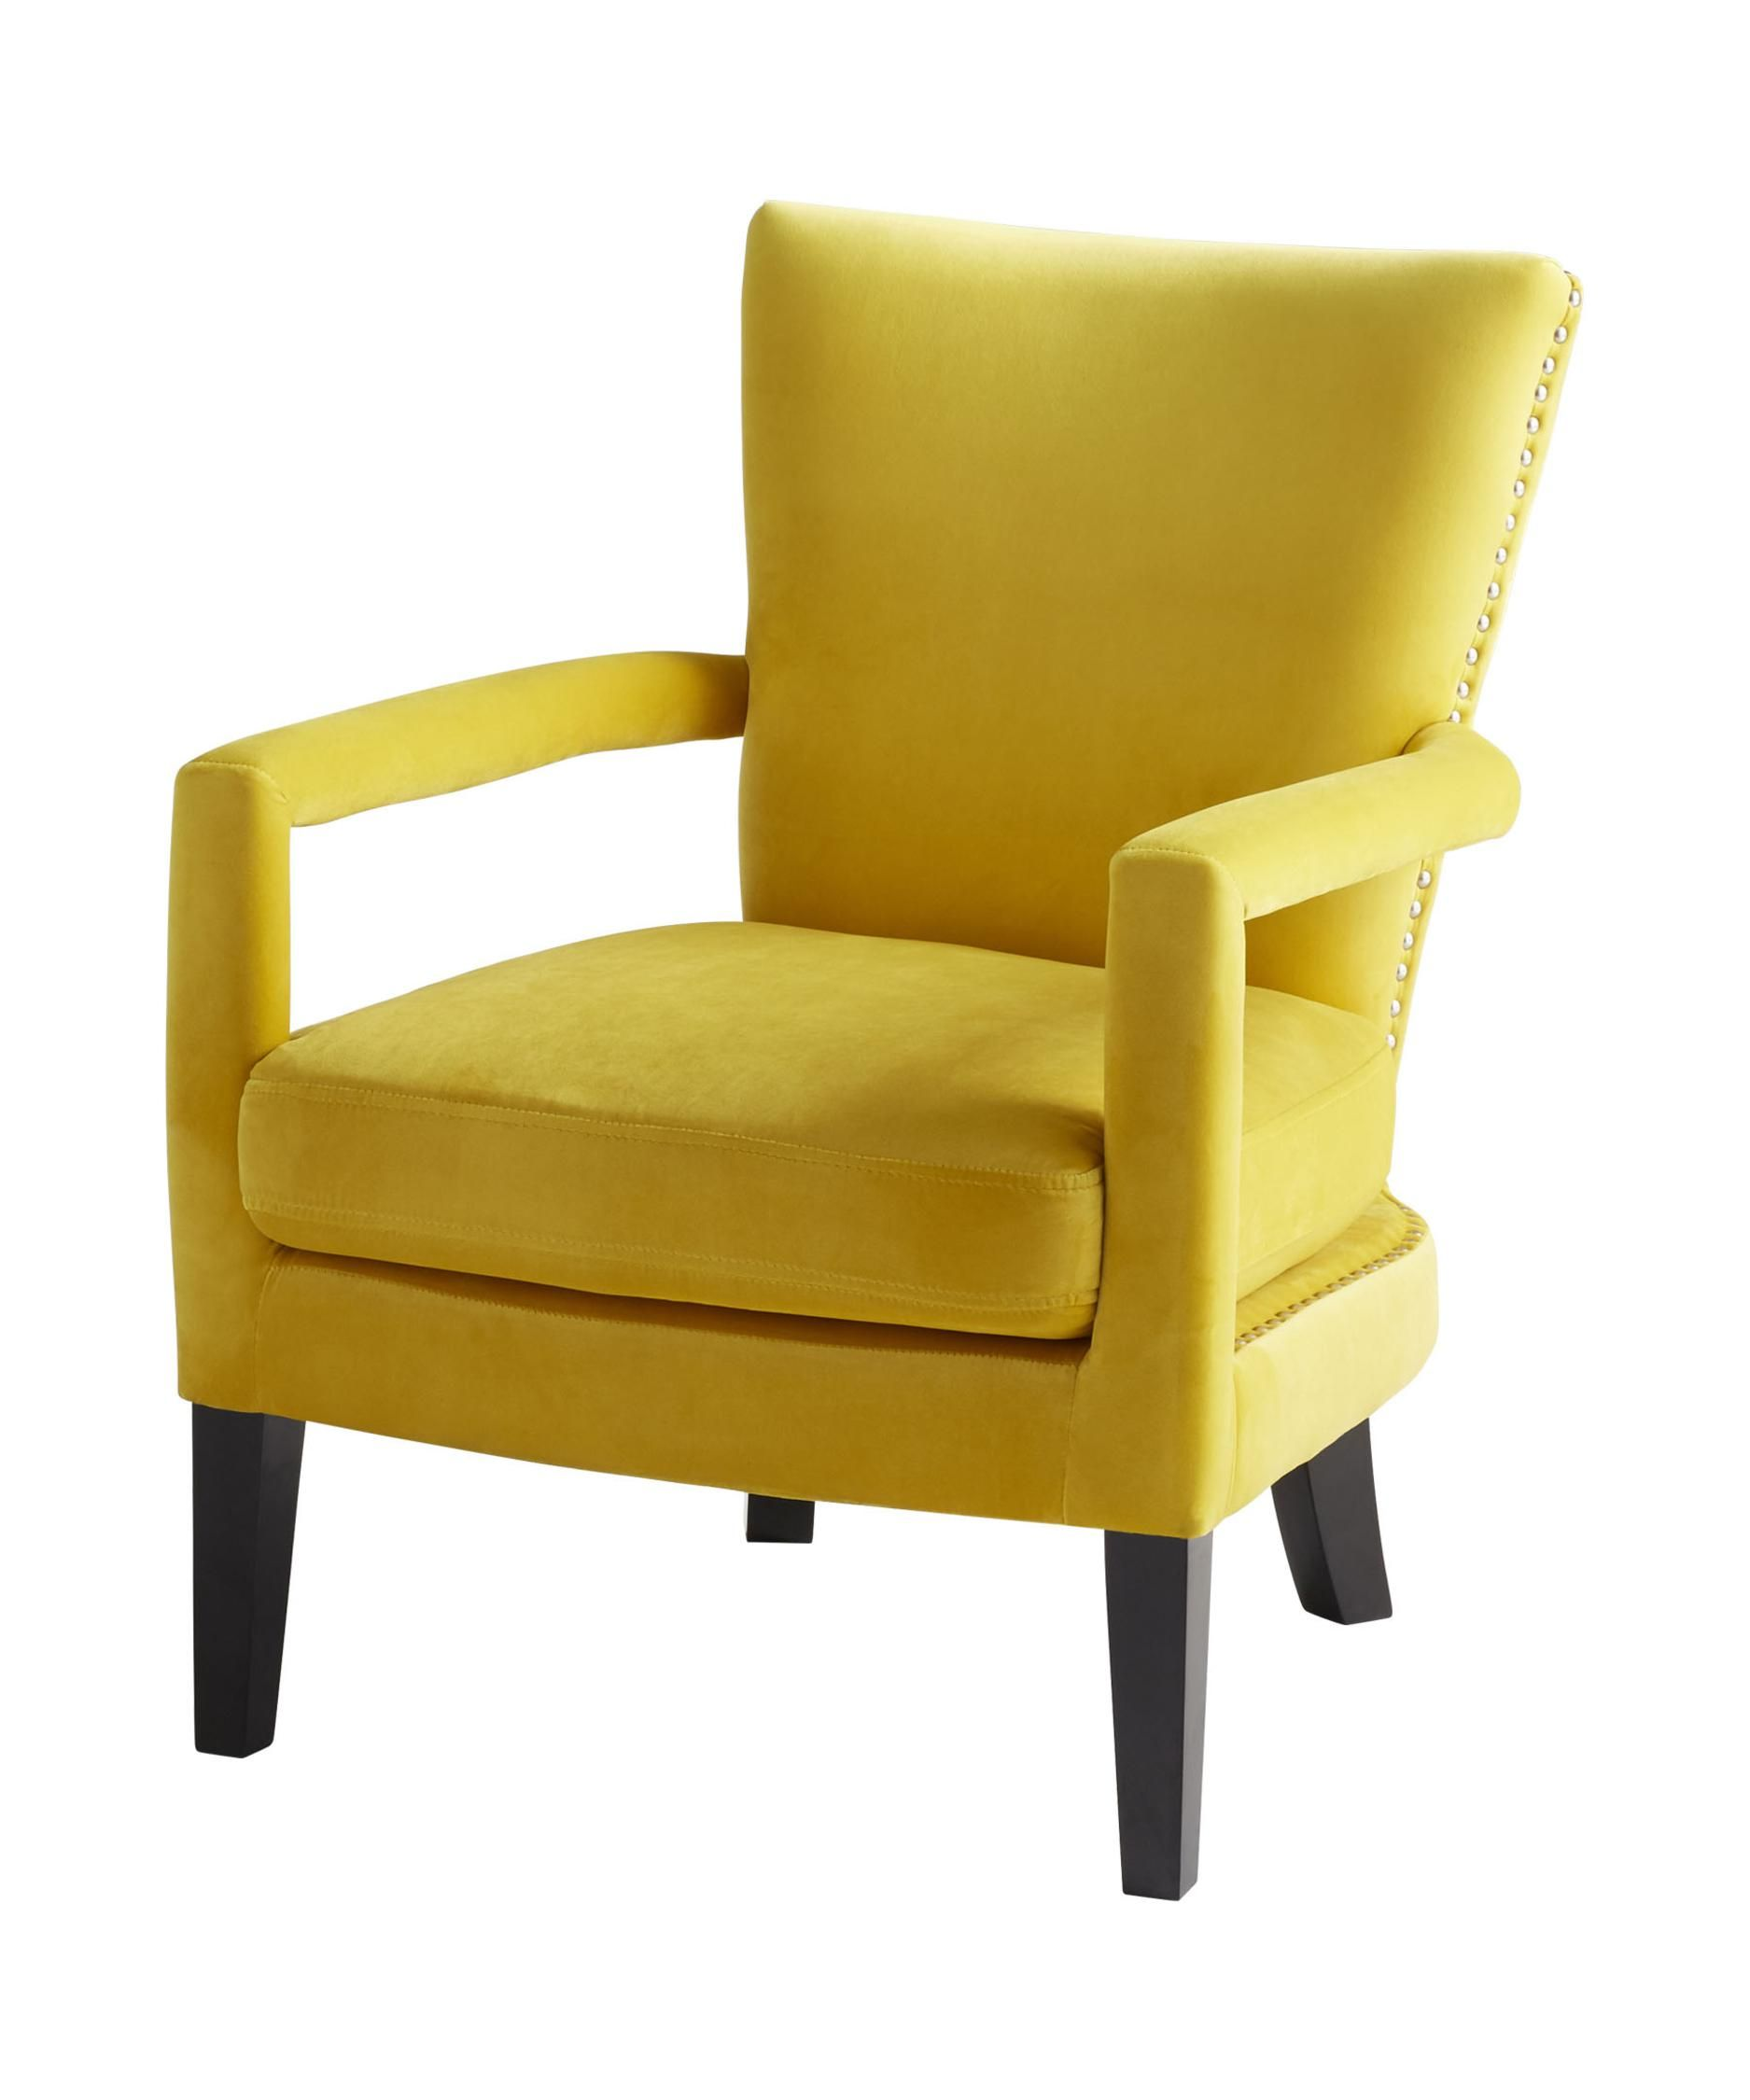 Cyan Design Colonel Mustard Arm Chair | Capitol Lighting 1 800lighting.com